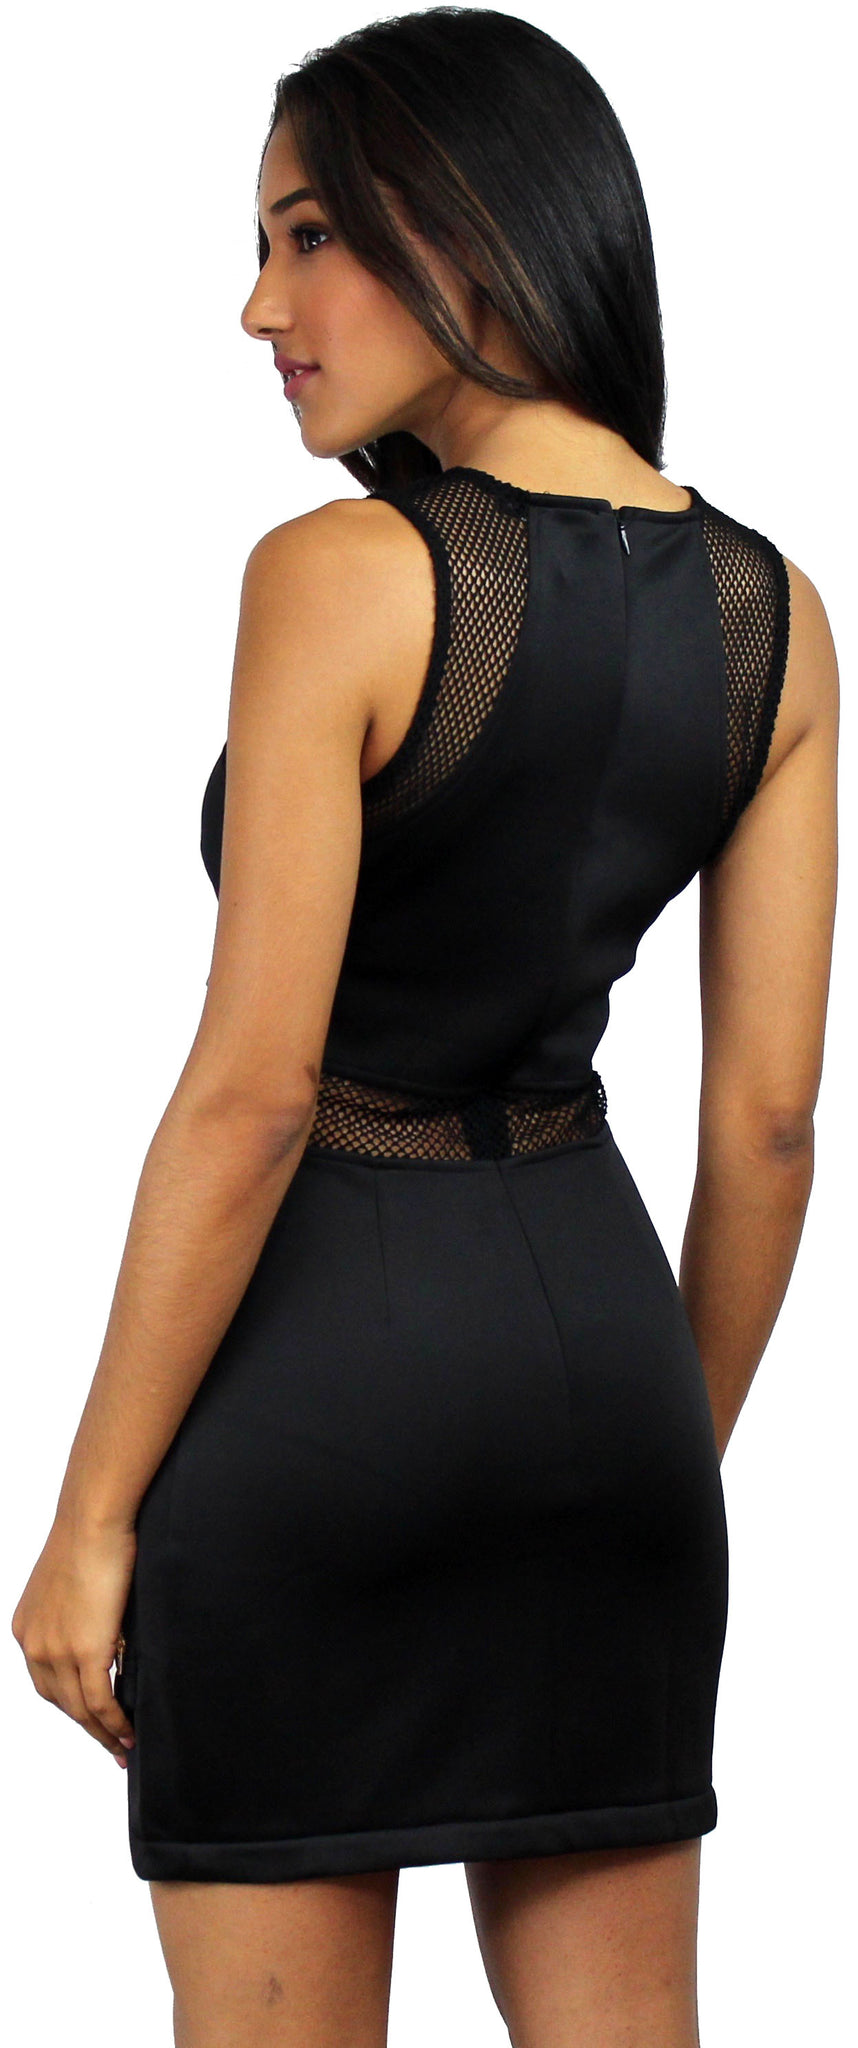 See Thru Mesh Bodycon Black Dress